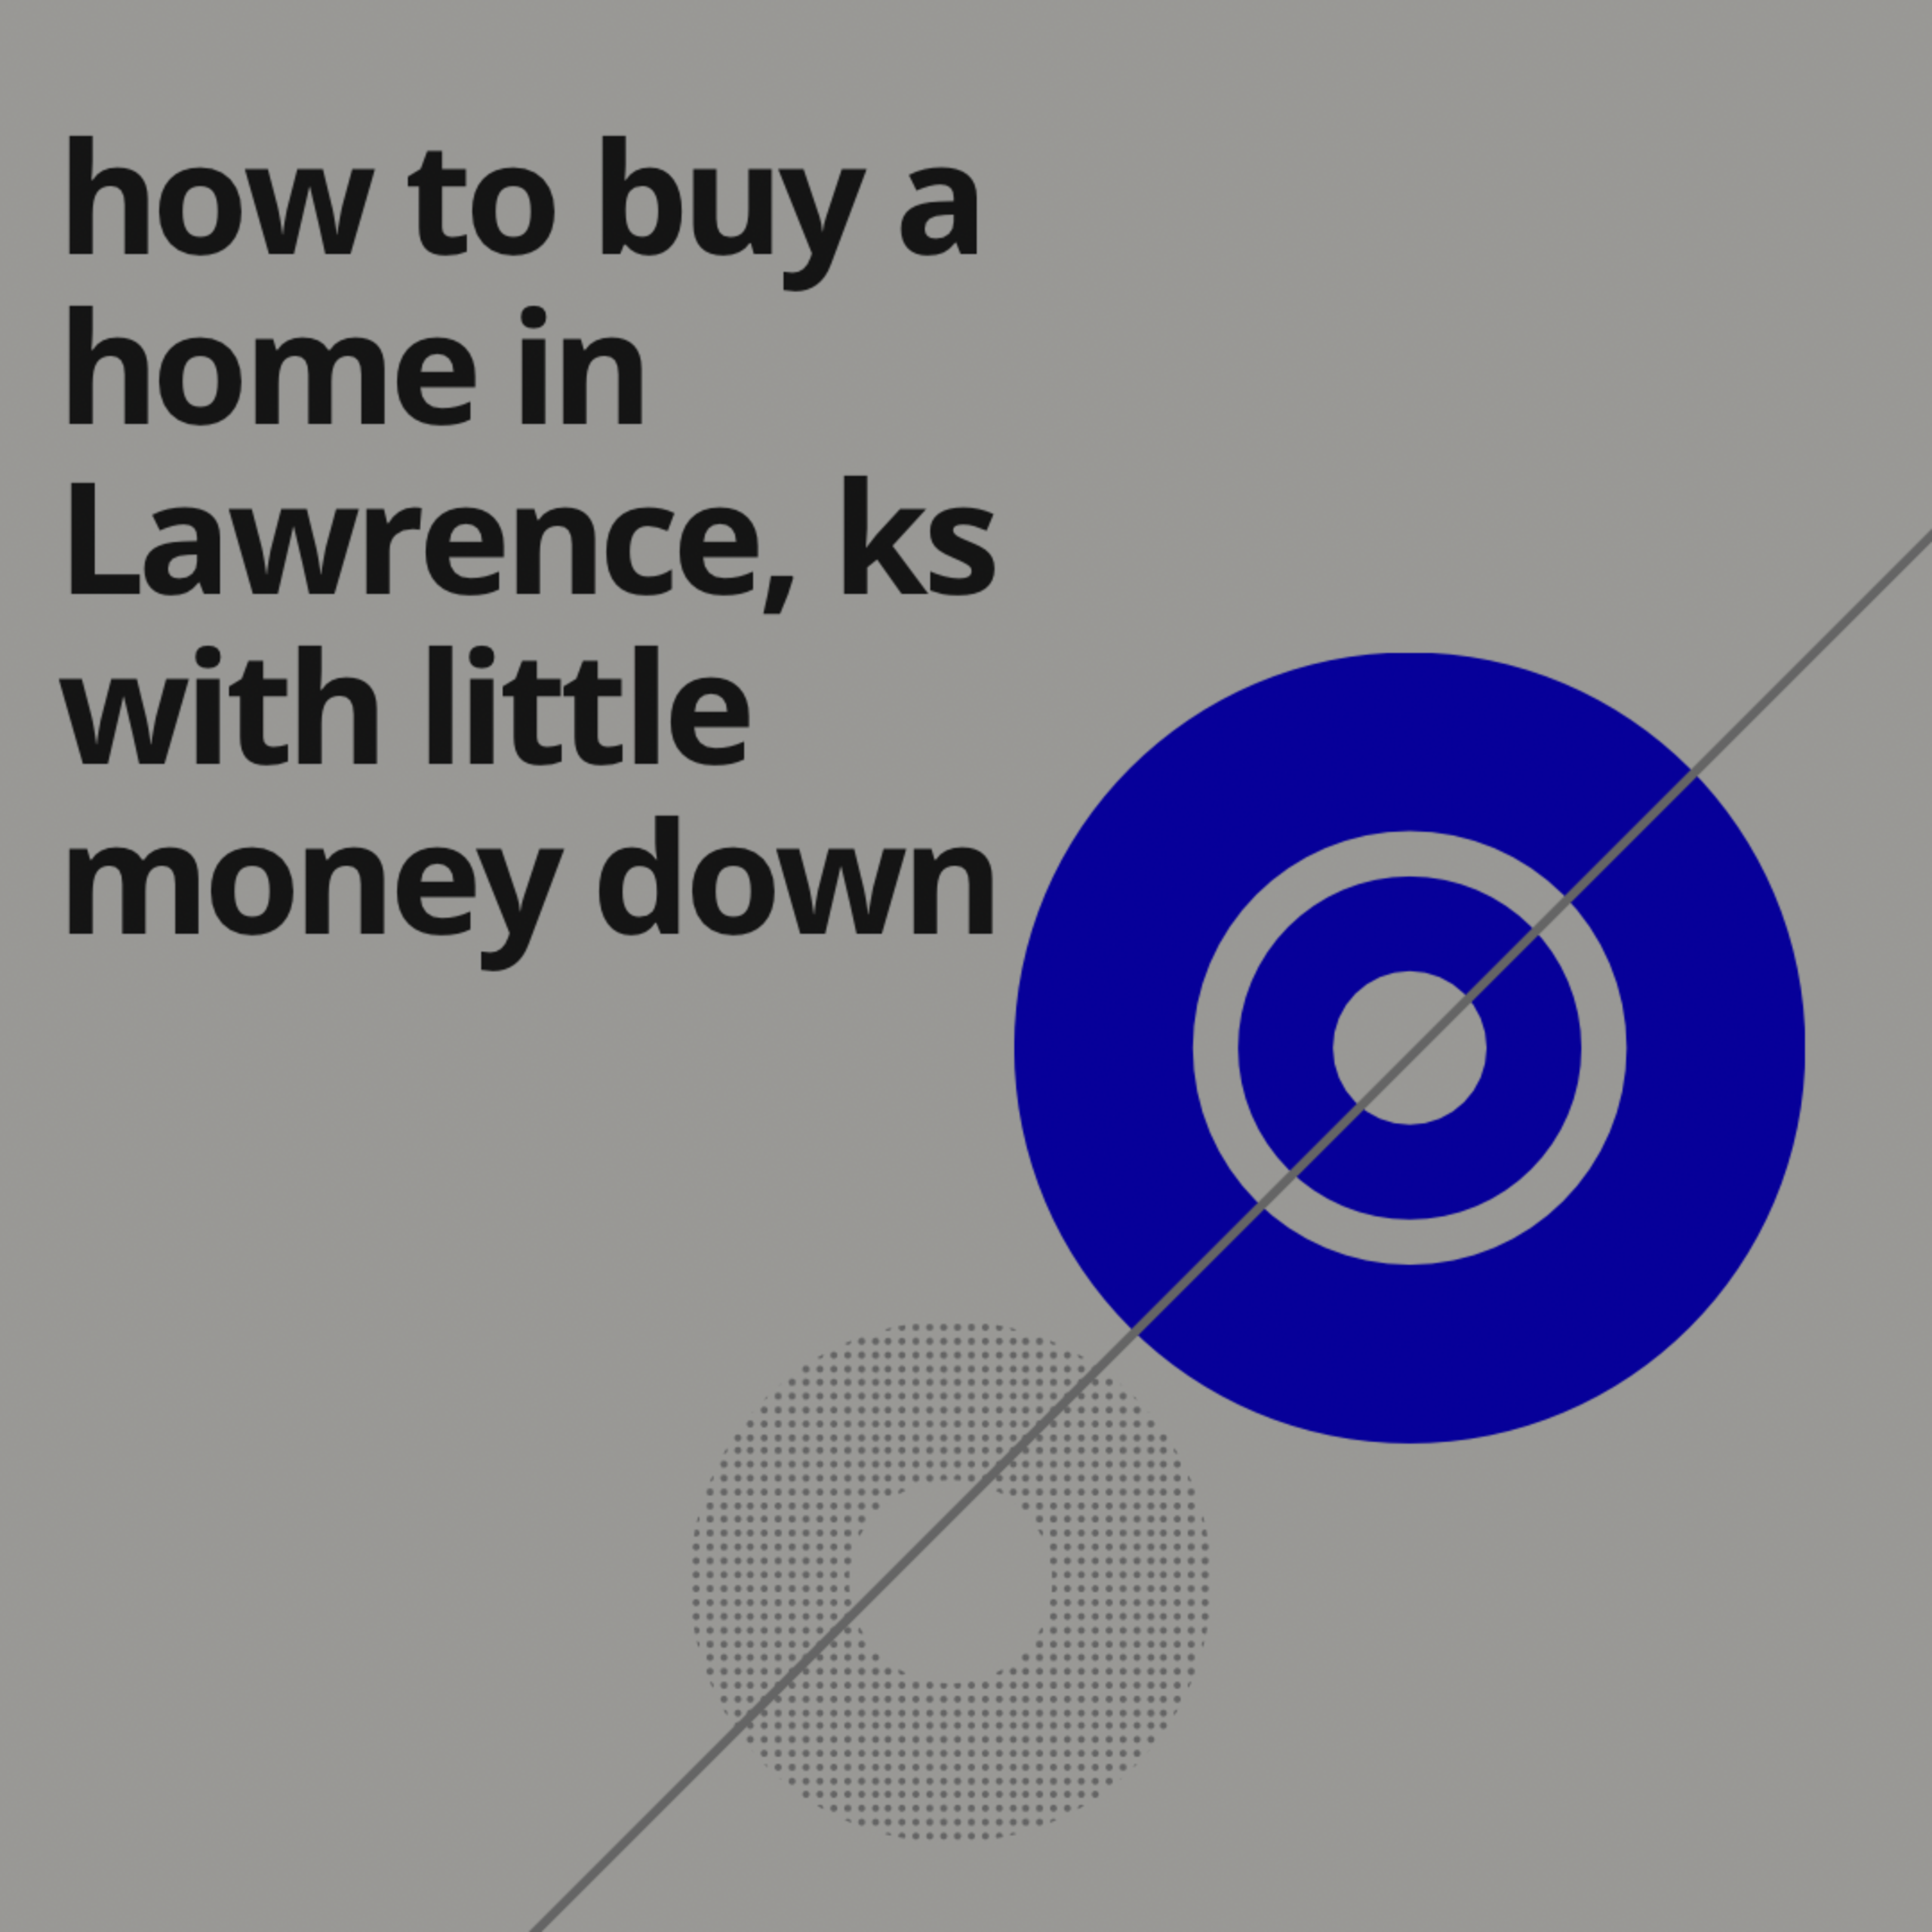 How to Buy a House in Lawrence with Little Money Down